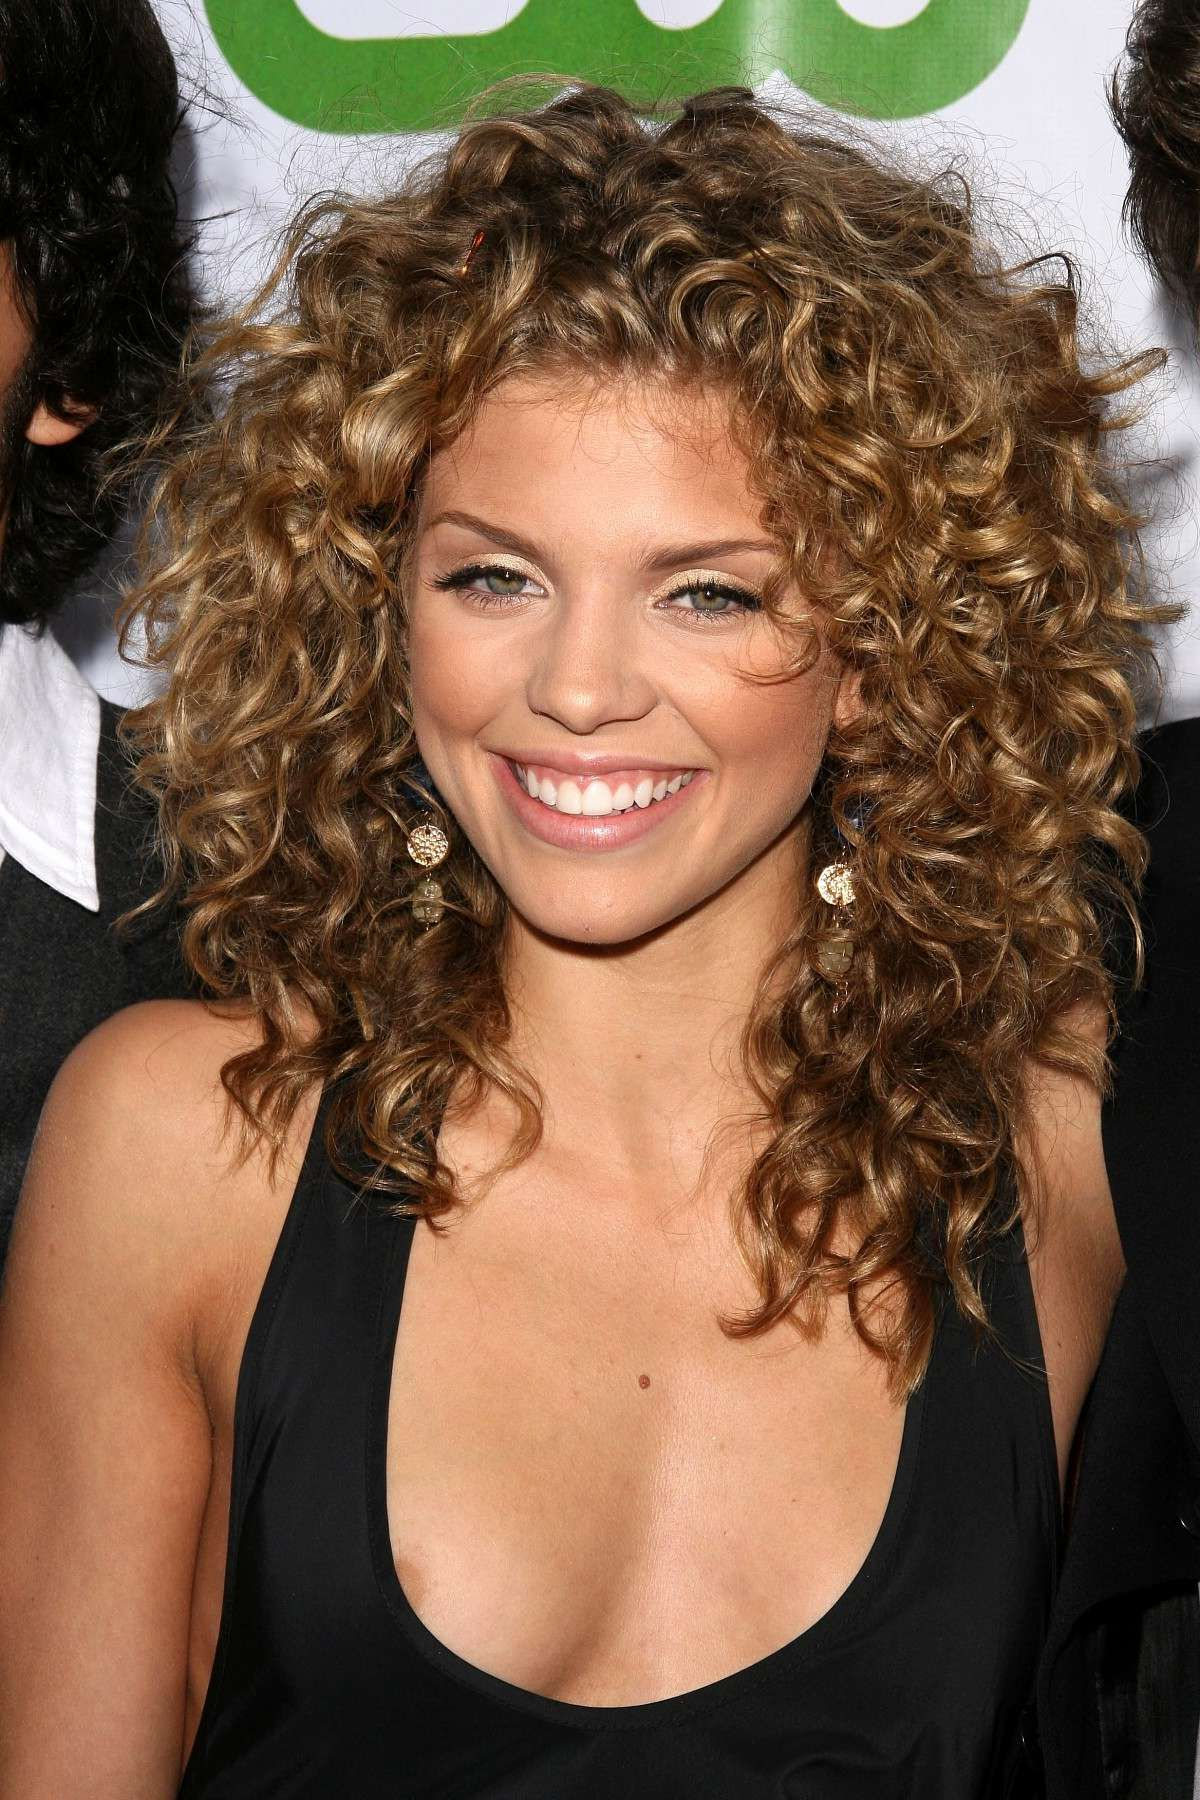 Hairstyles For Curly Hair Diamond Face Shape Fresh Beautiful Natural Inside Widely Used Naturally Curly Medium Hairstyles (View 8 of 20)